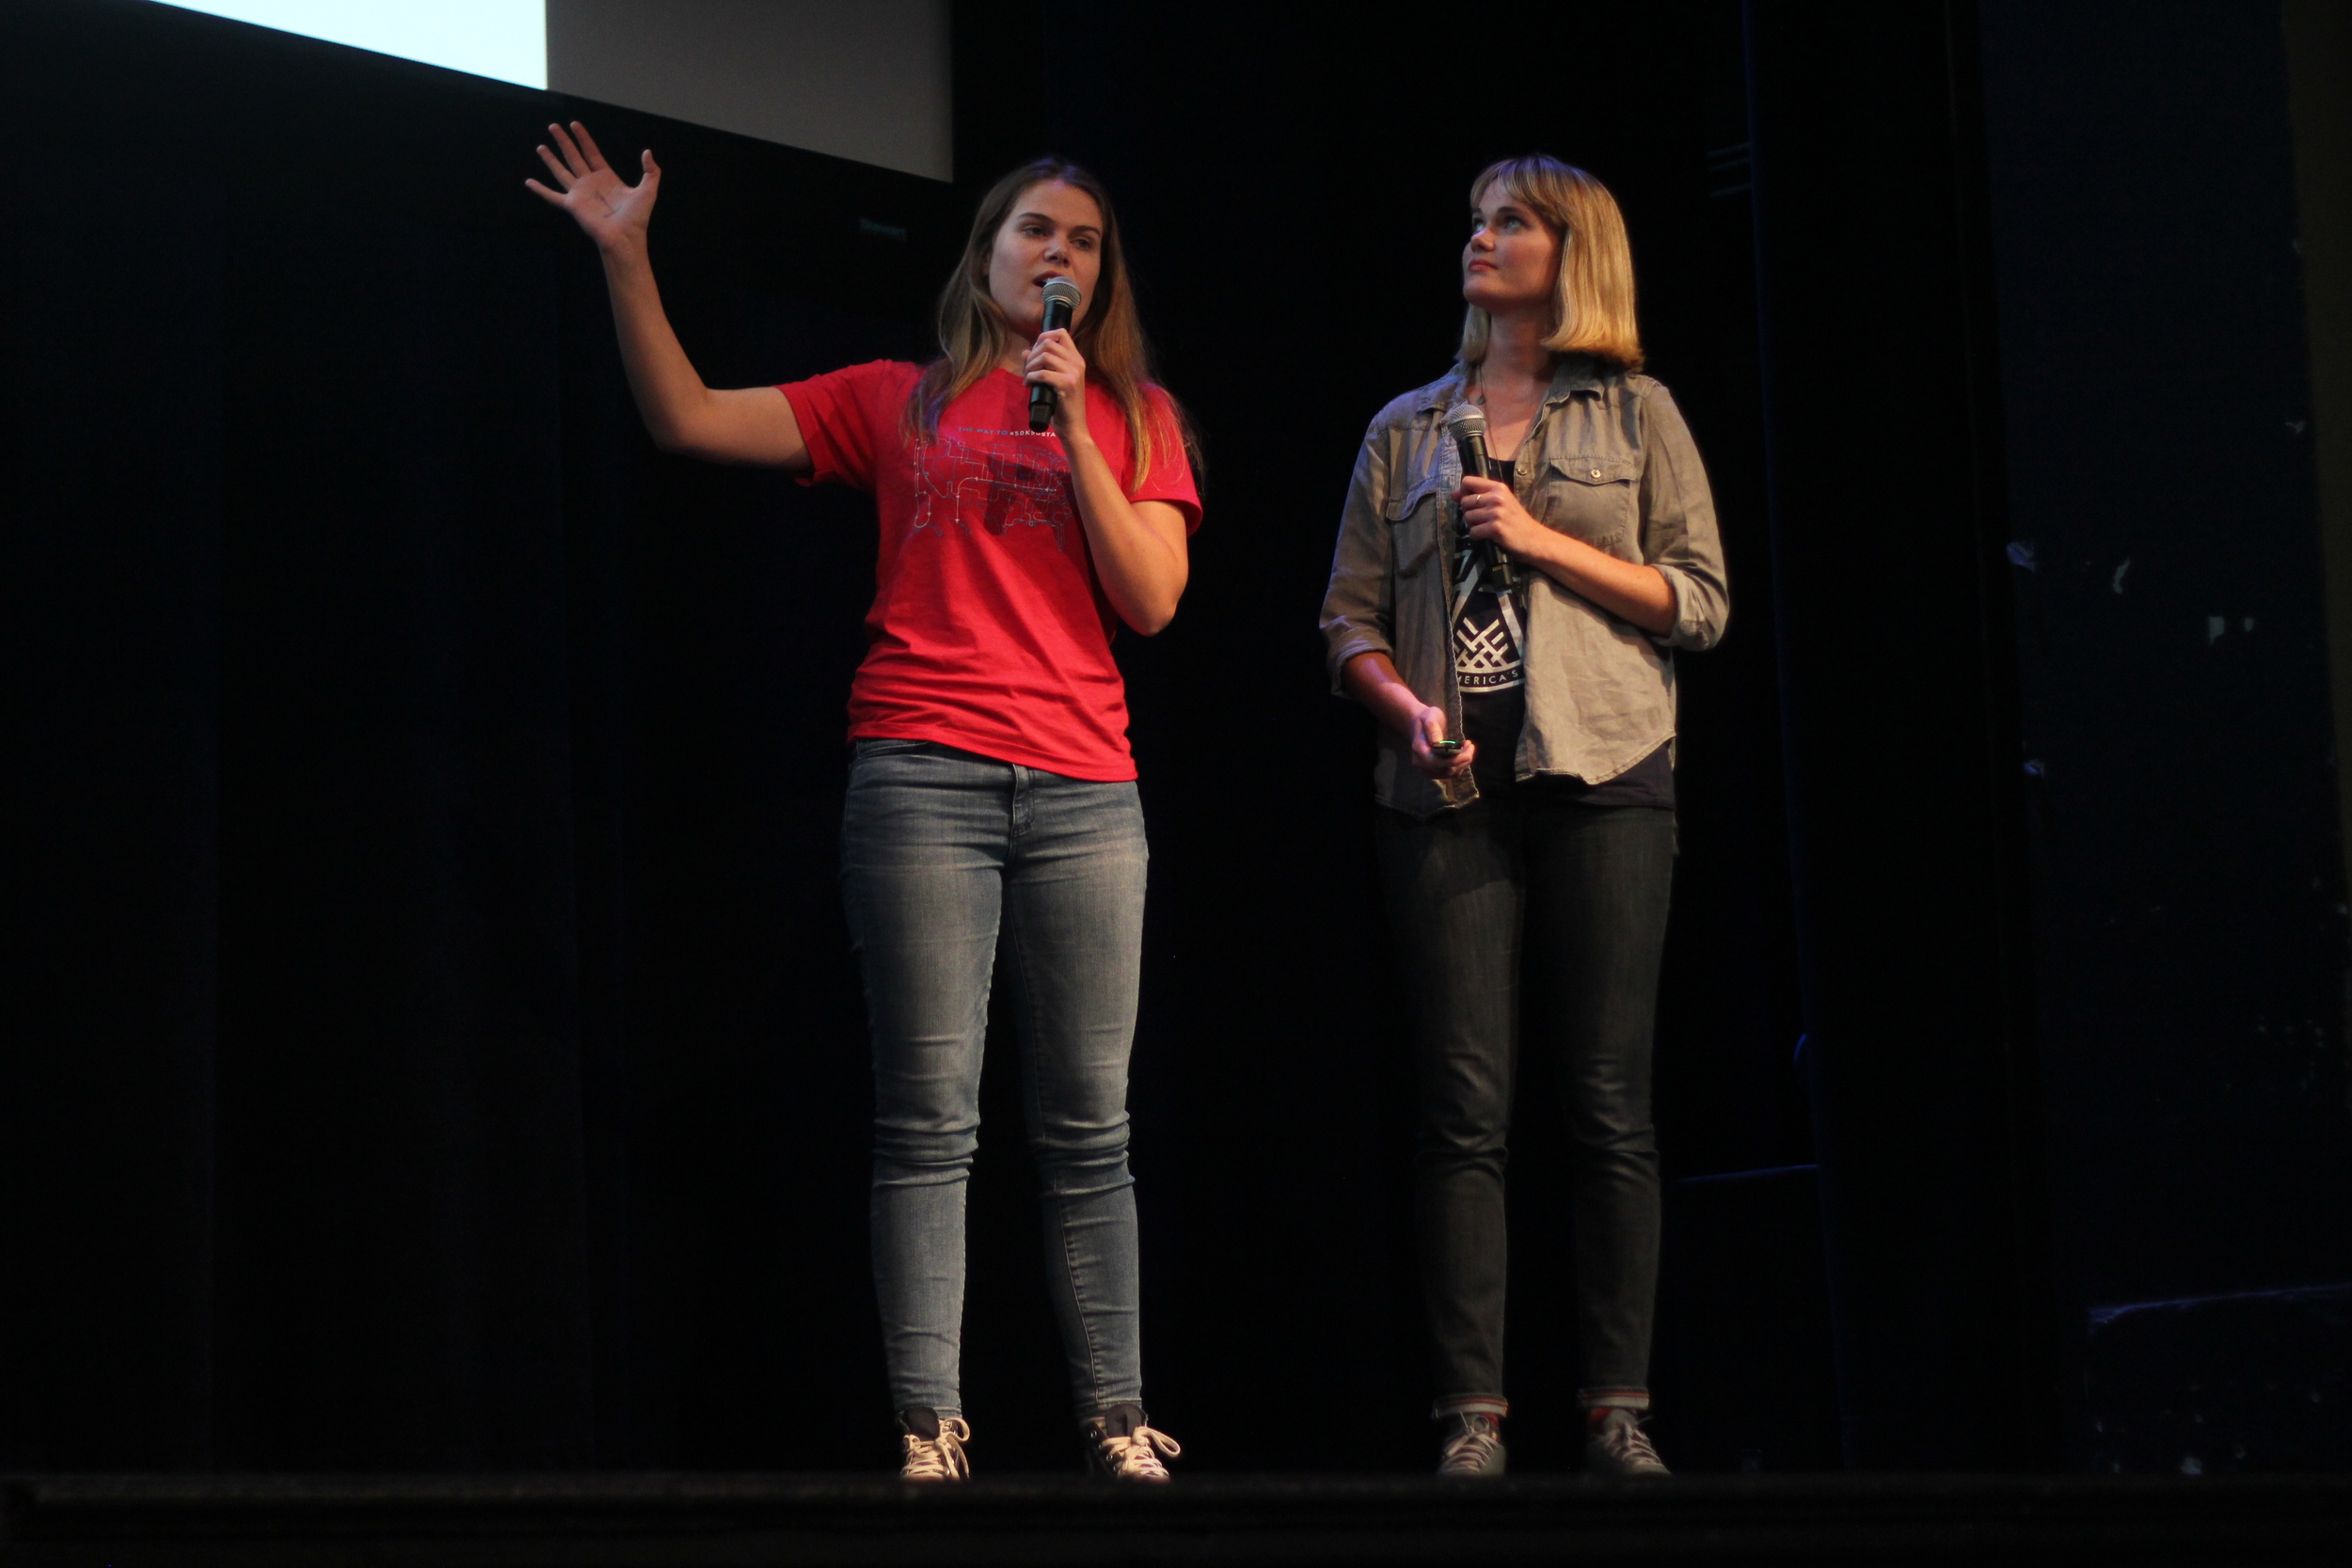 Sisters Sam and Alex Kimura. Sam is currently searching to find her match to receive a bone marrow transplant.